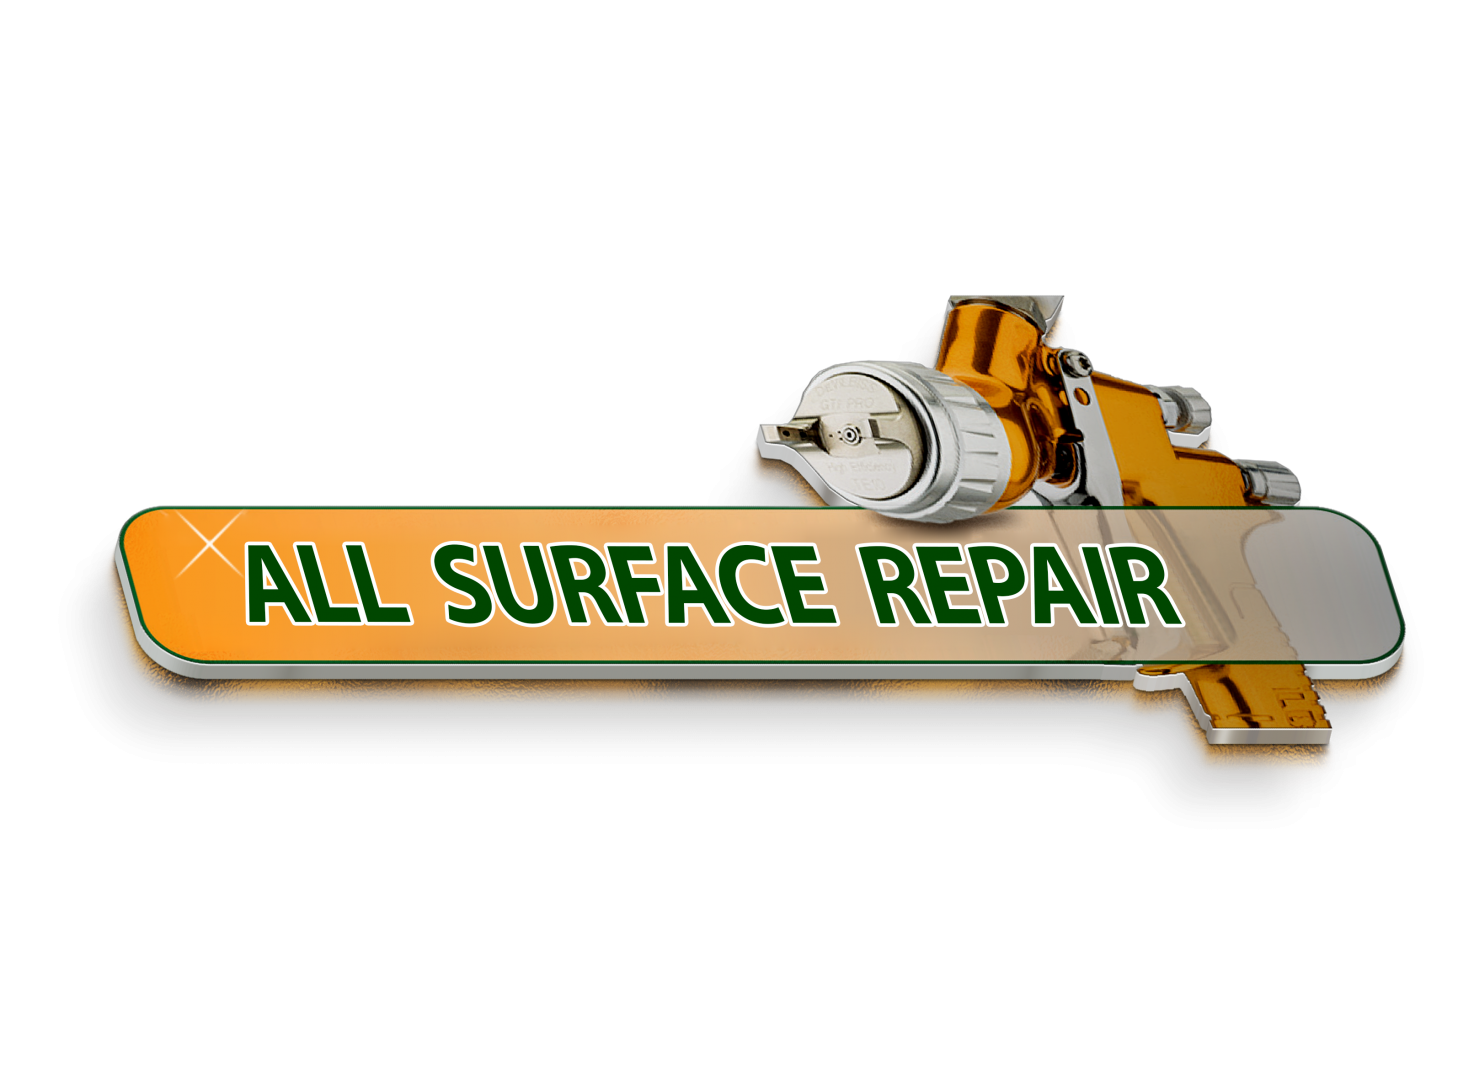 All Surface REPAIR